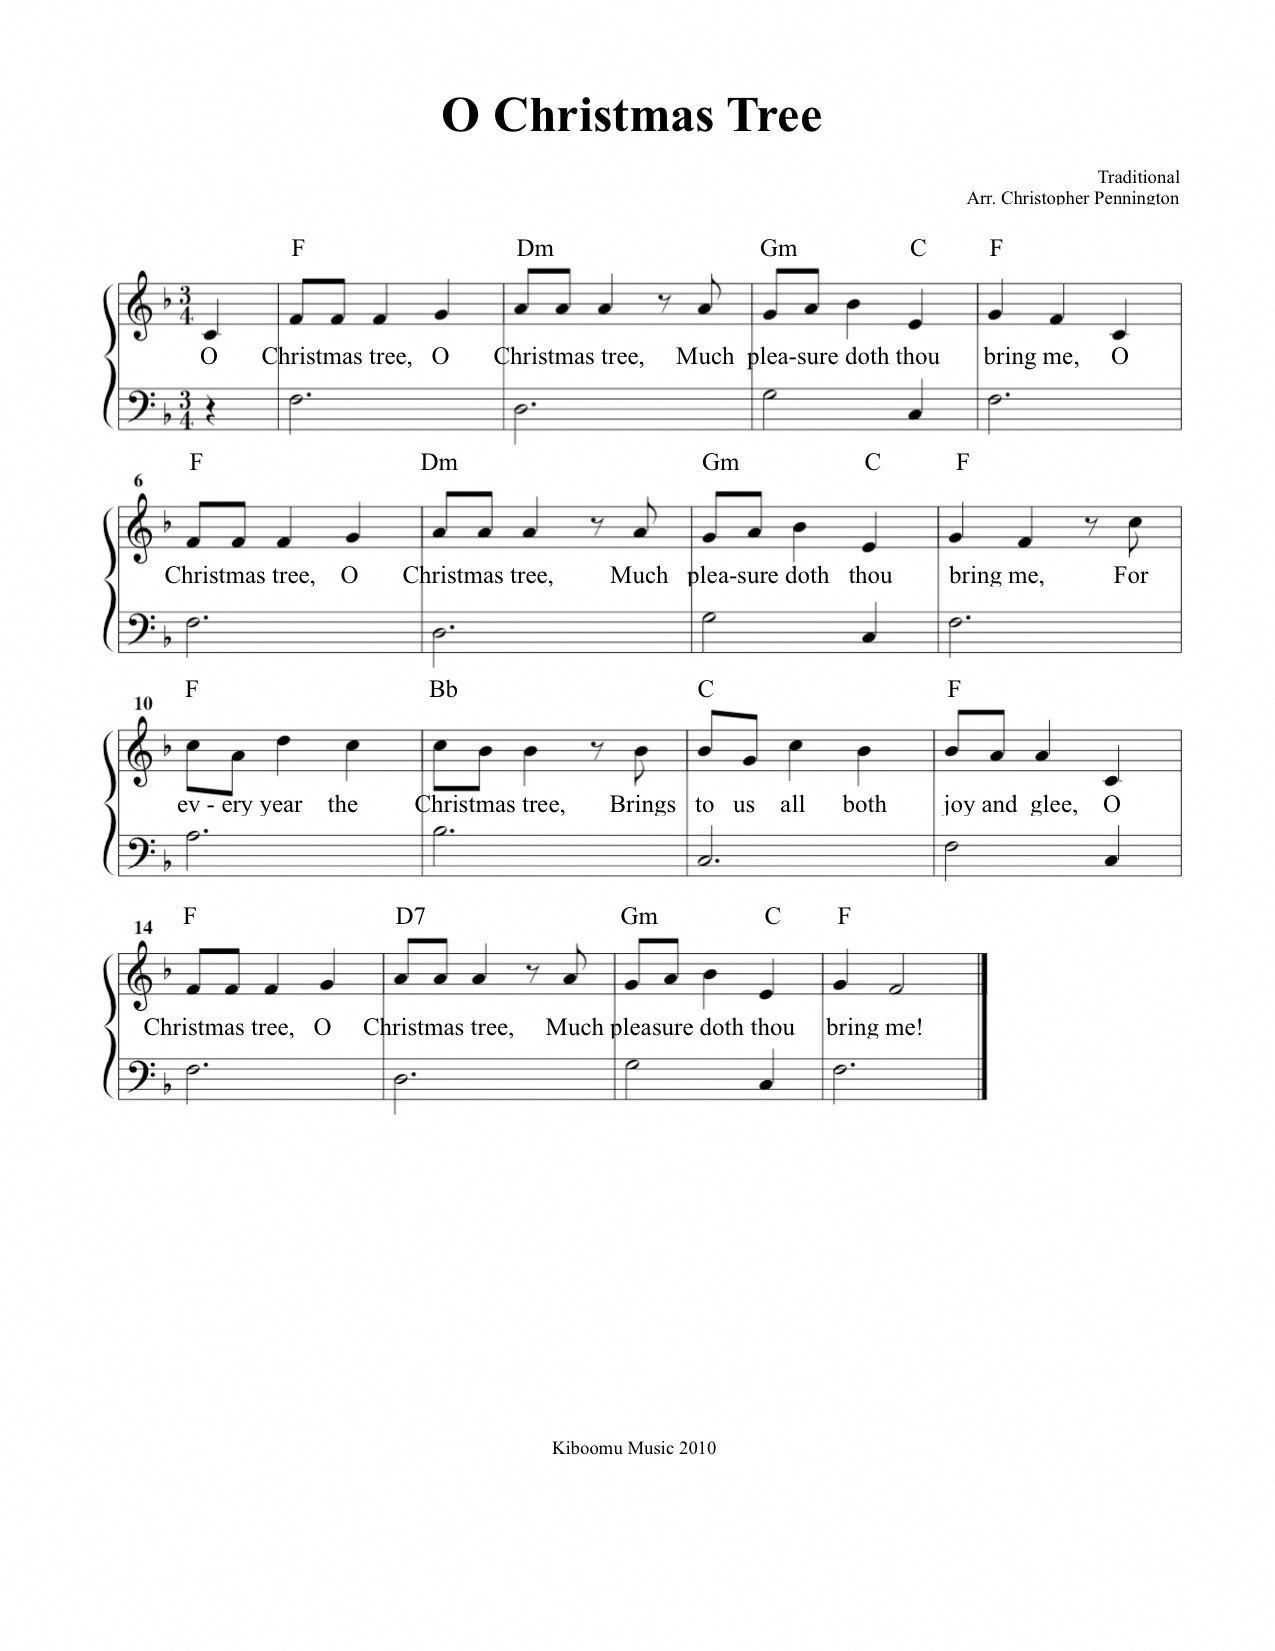 Adam O Holy Night sheet music for piano, voice or other